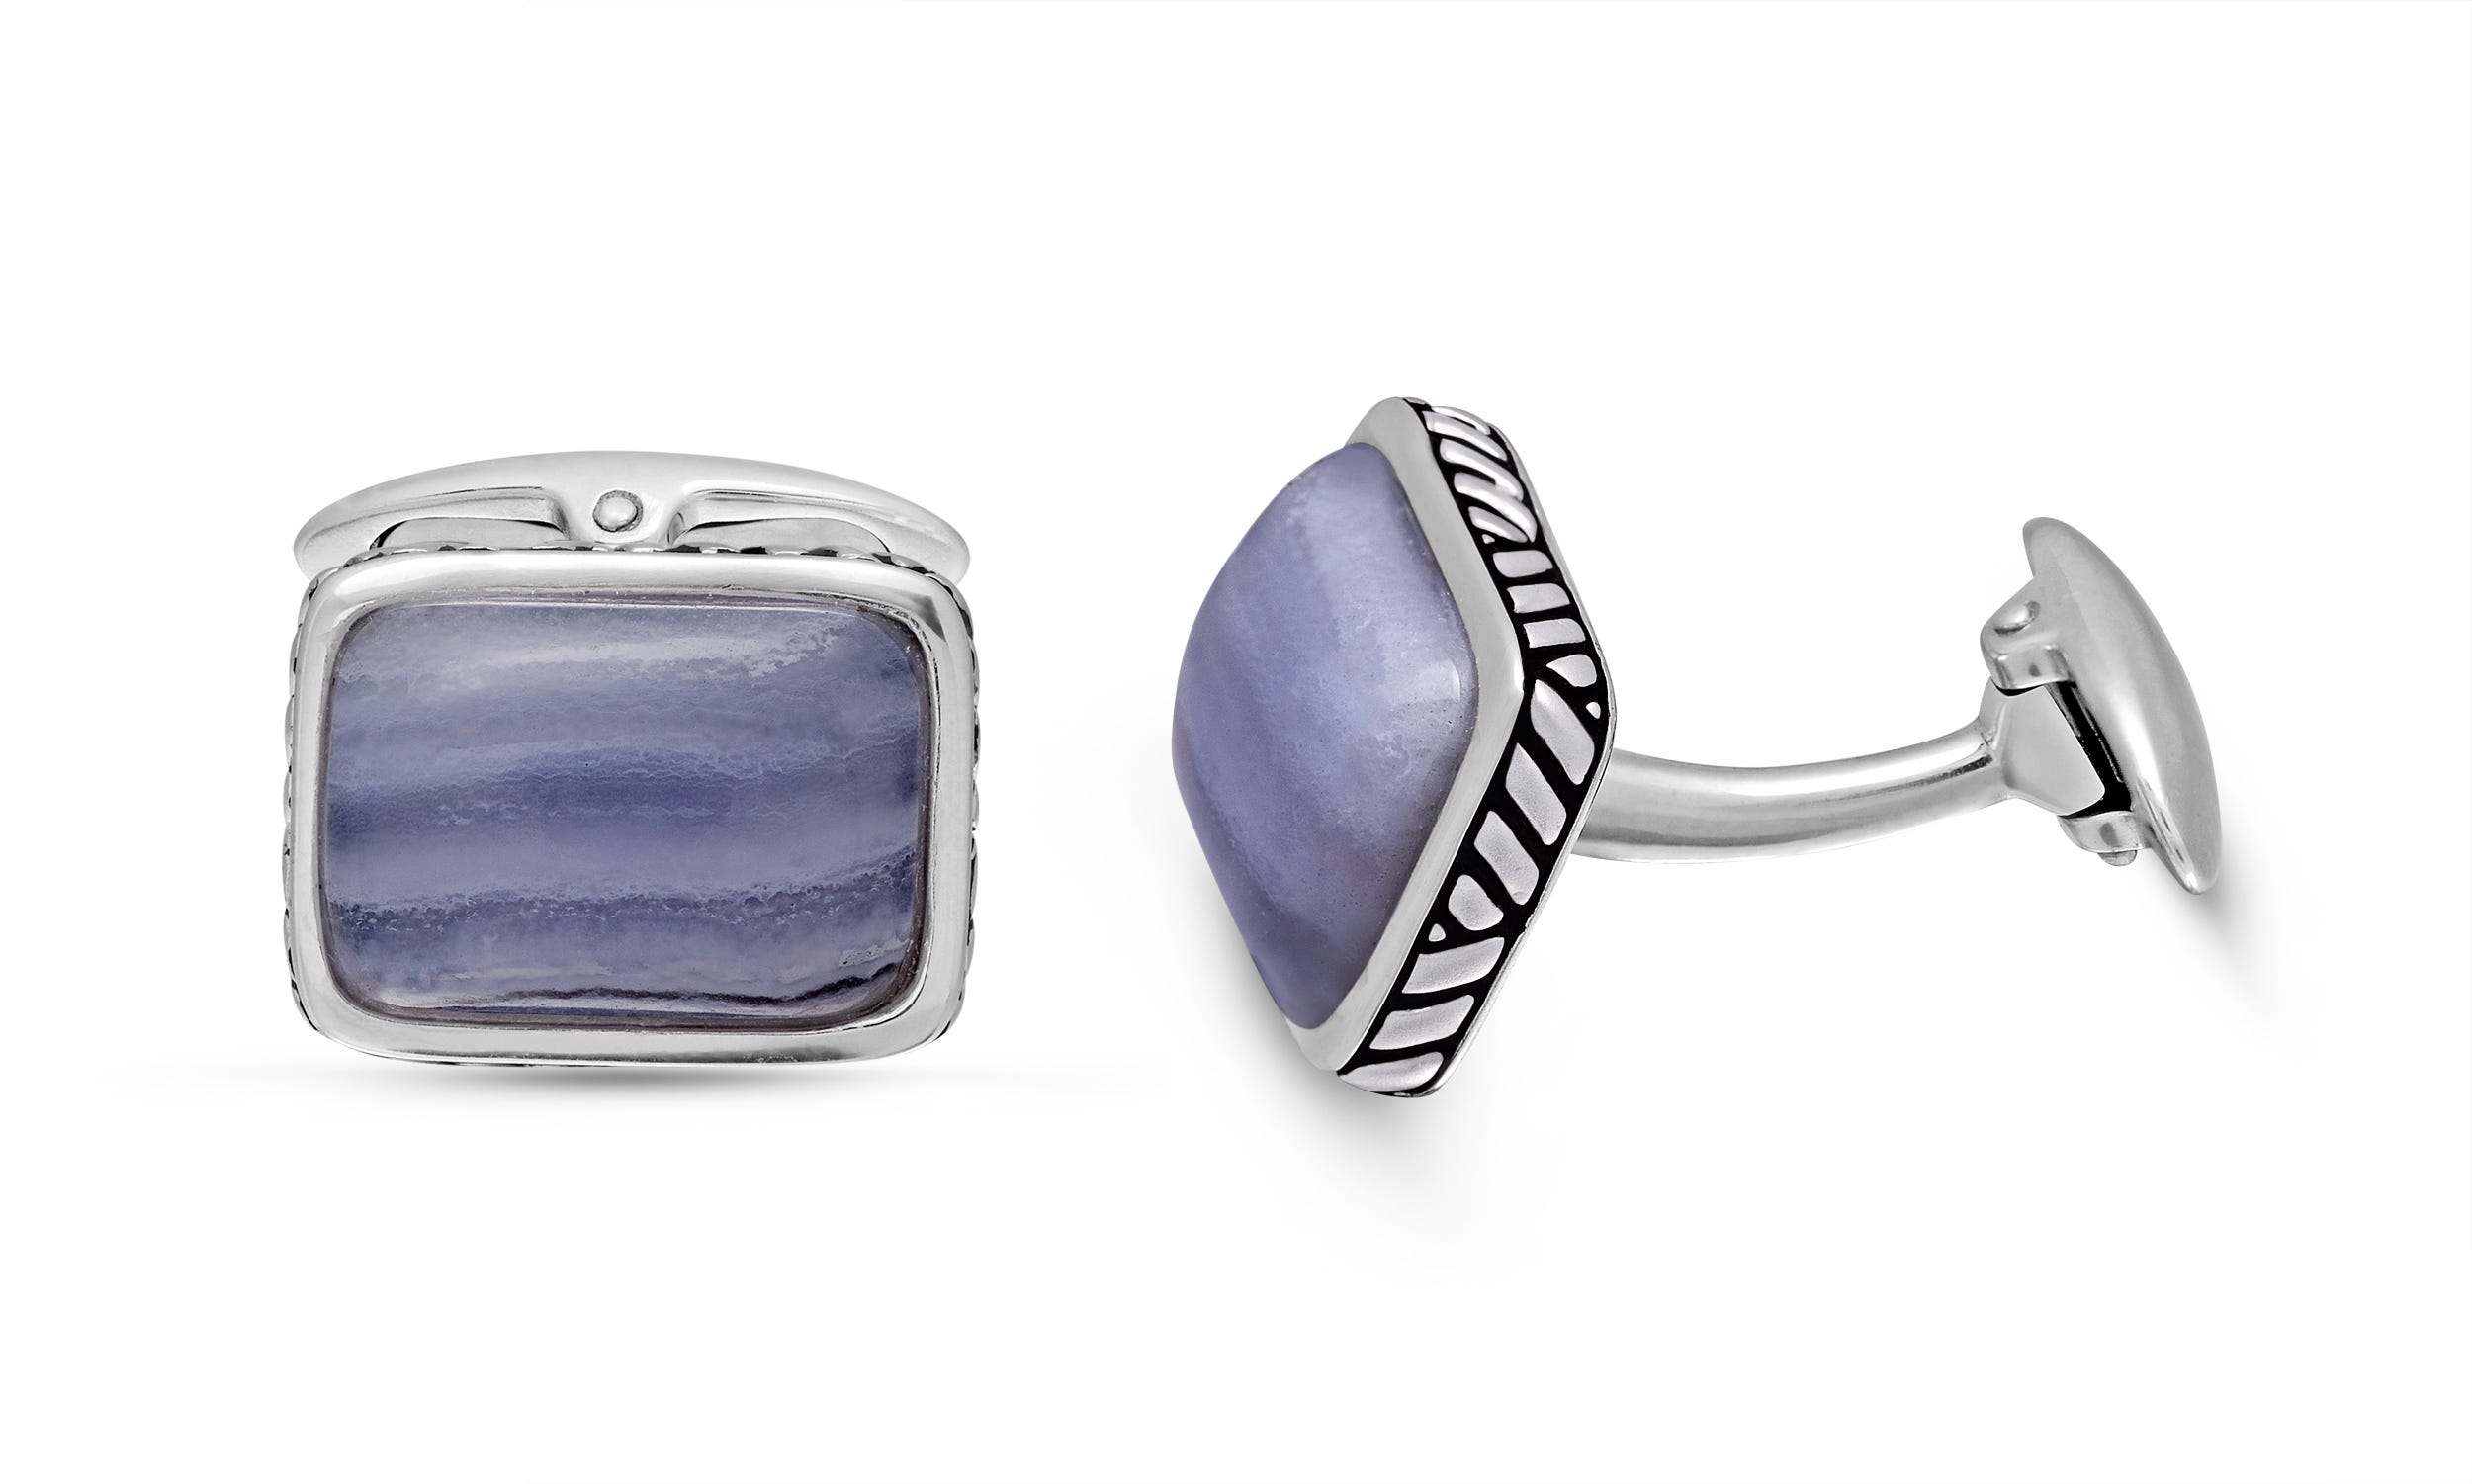 Blue Lace Agate Stone Cufflinks in Sterling Silver & Black Rhodium